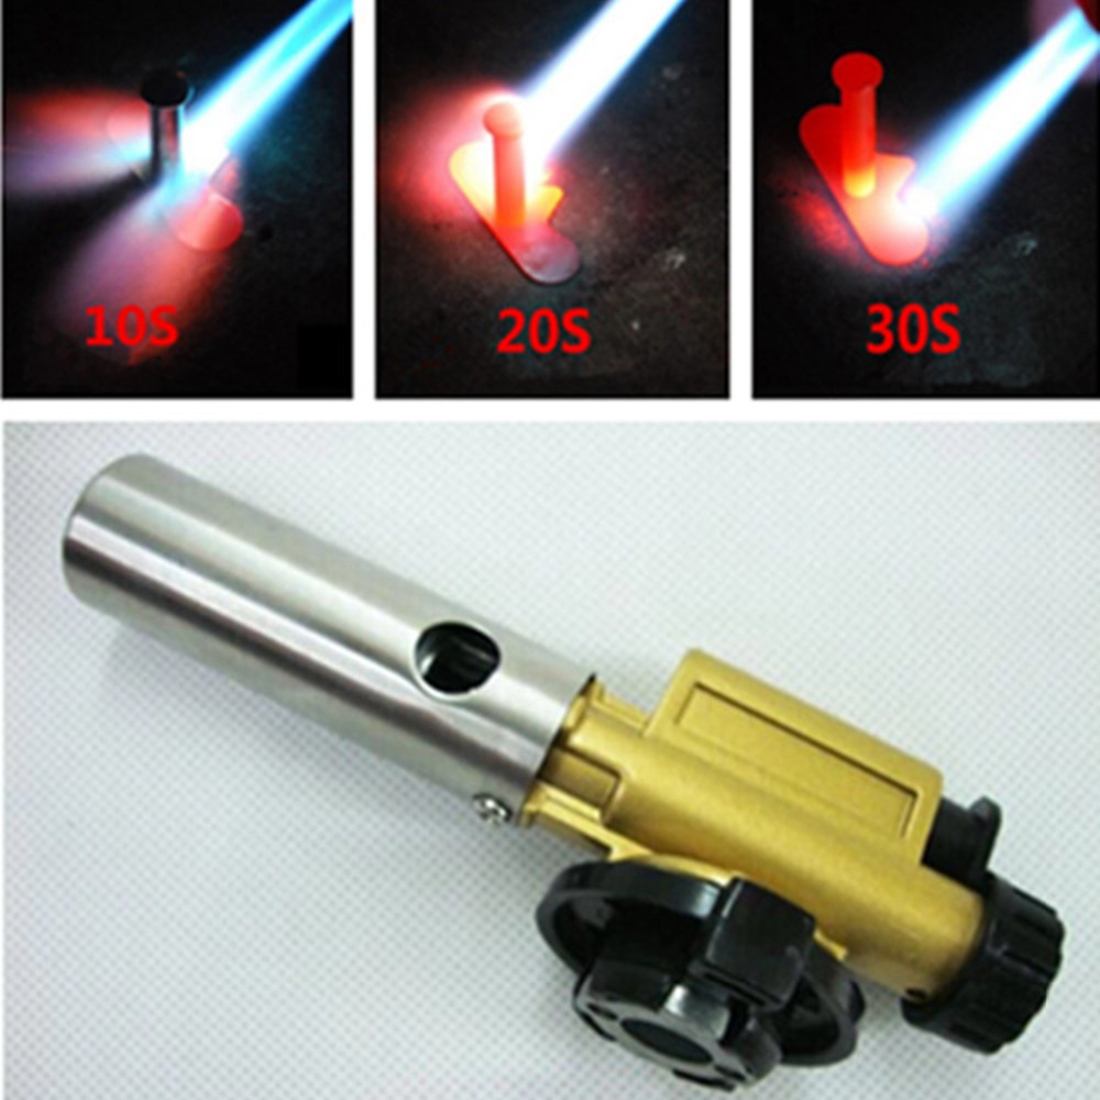 Electronic Ignition Copper Flame Butane Gas Burner Gun Maker Torch Lighter For Outdoor Camping Picnic Free Shipping(China (Mainland))